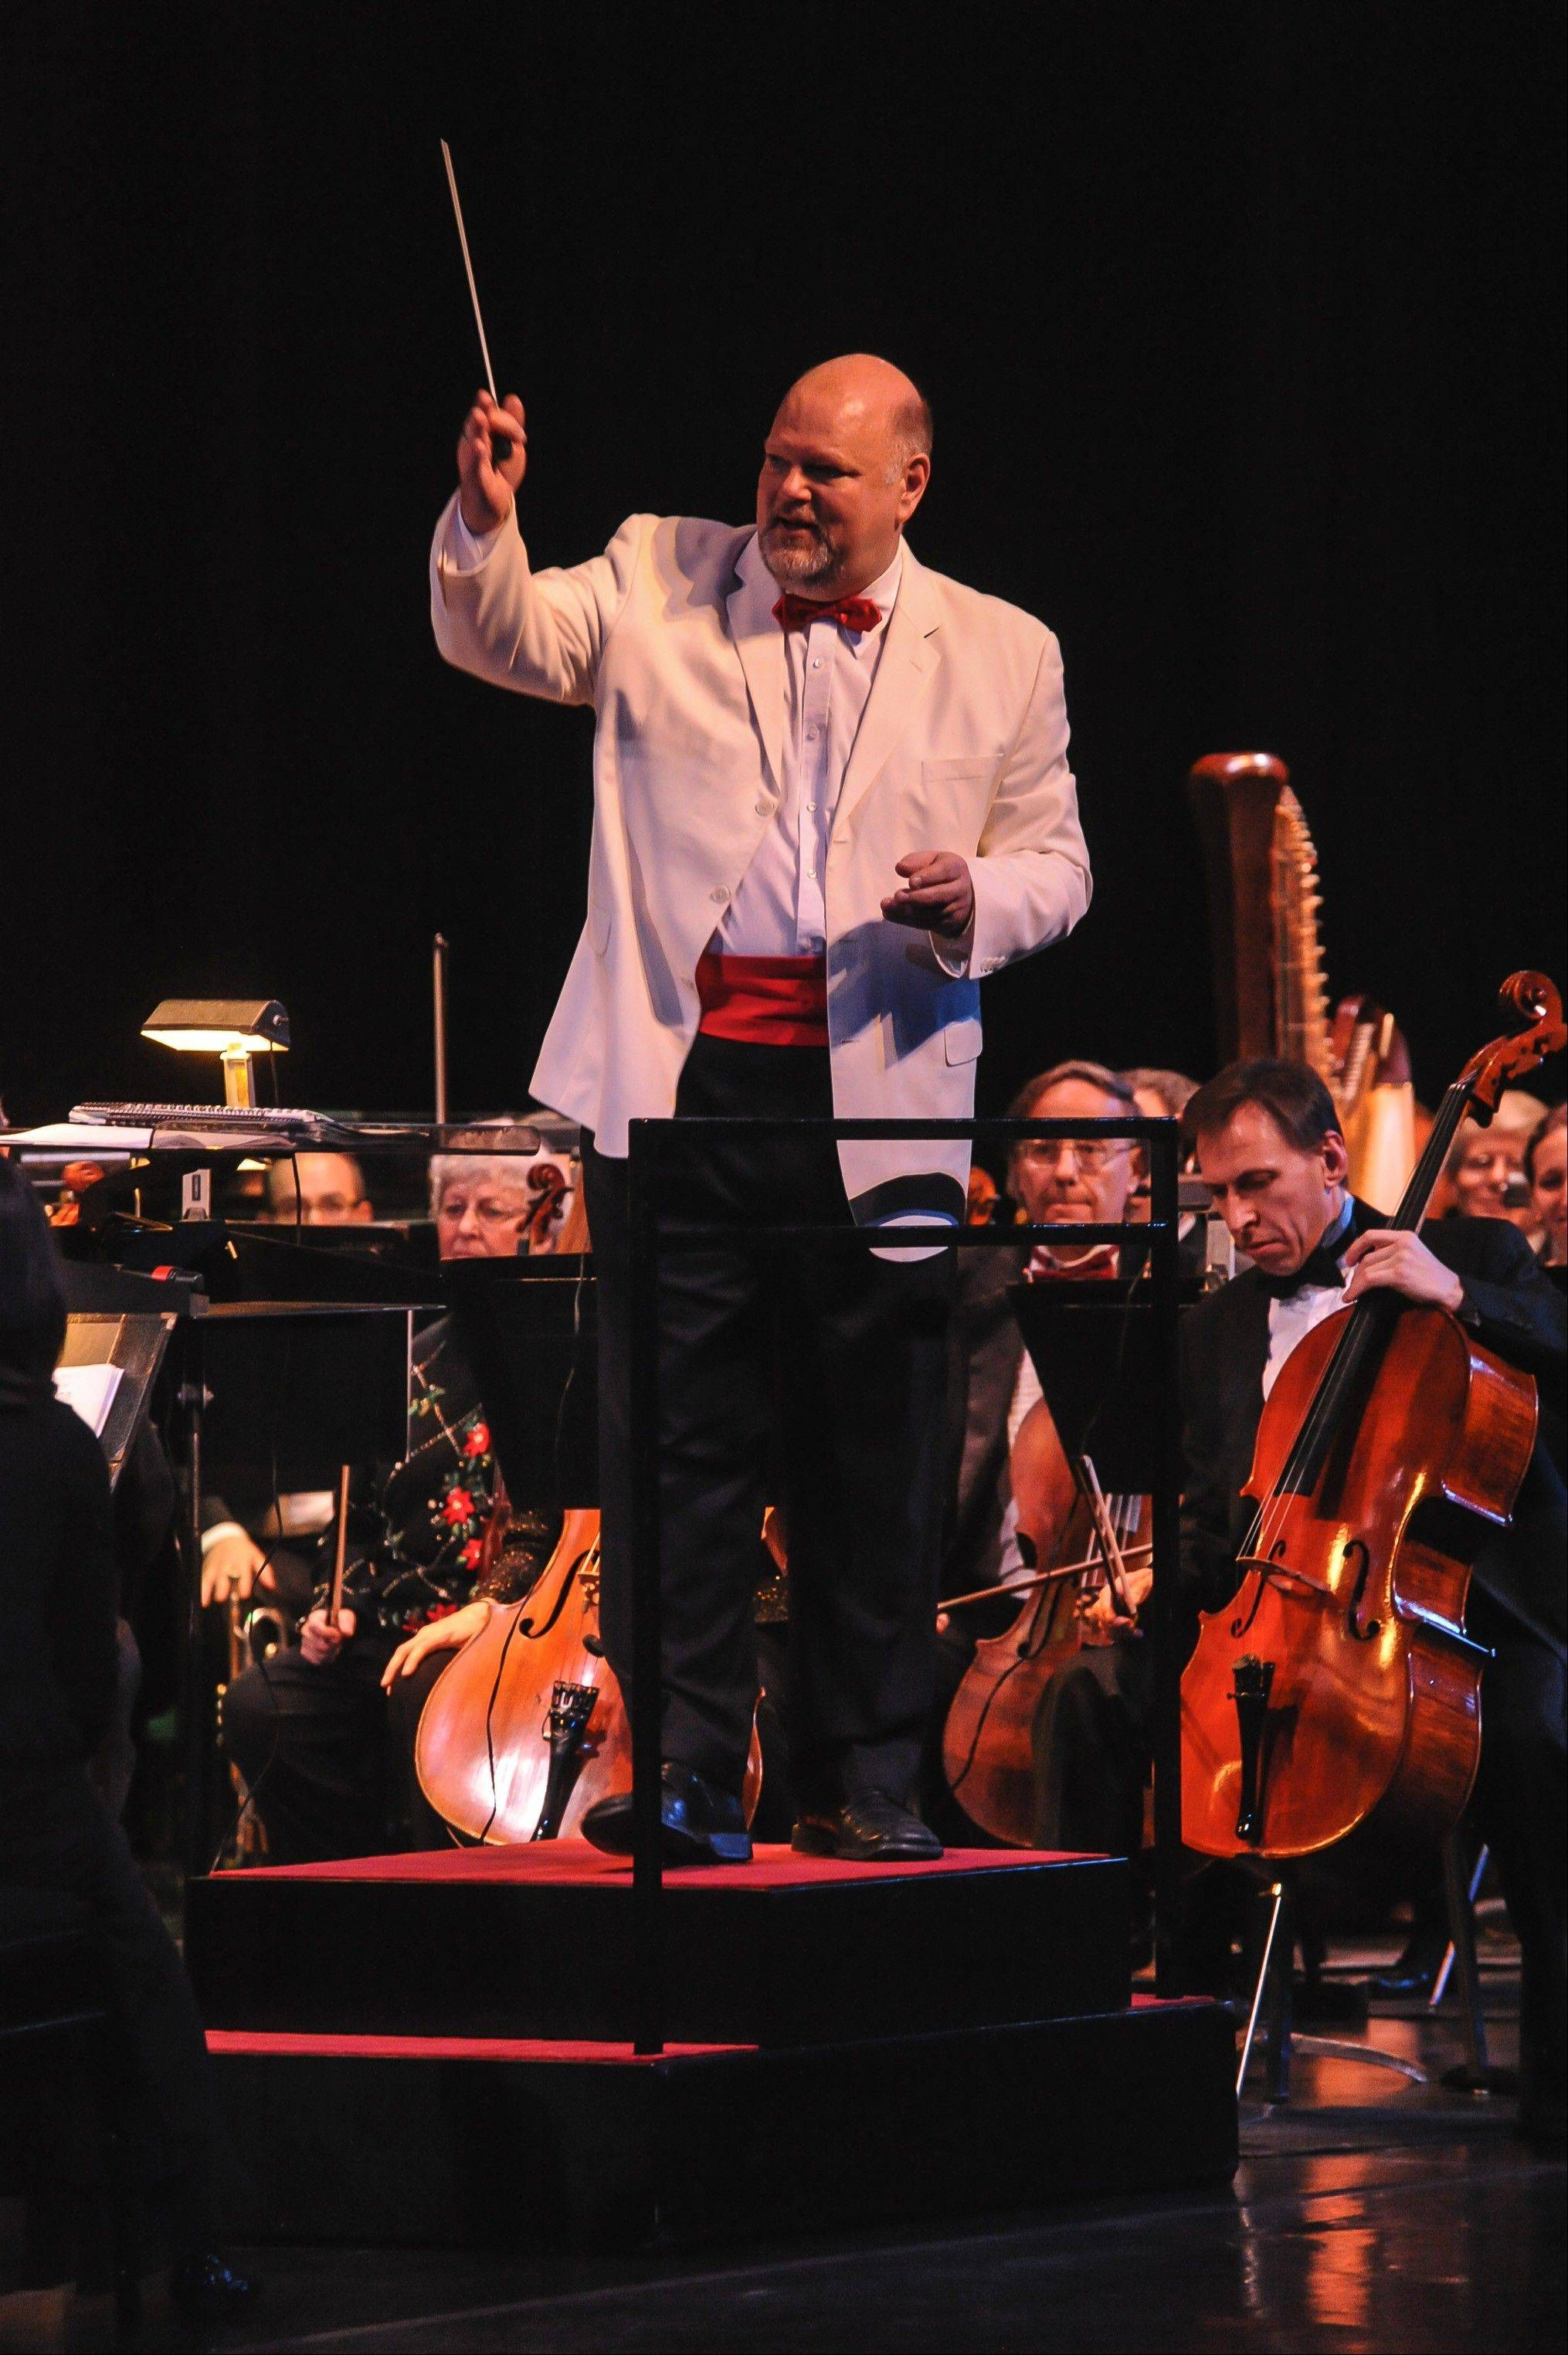 Stephen Squires will conduct the Elgin Symphony Orchestra's Magical Holiday Concerts this weekend at the Hemmens.